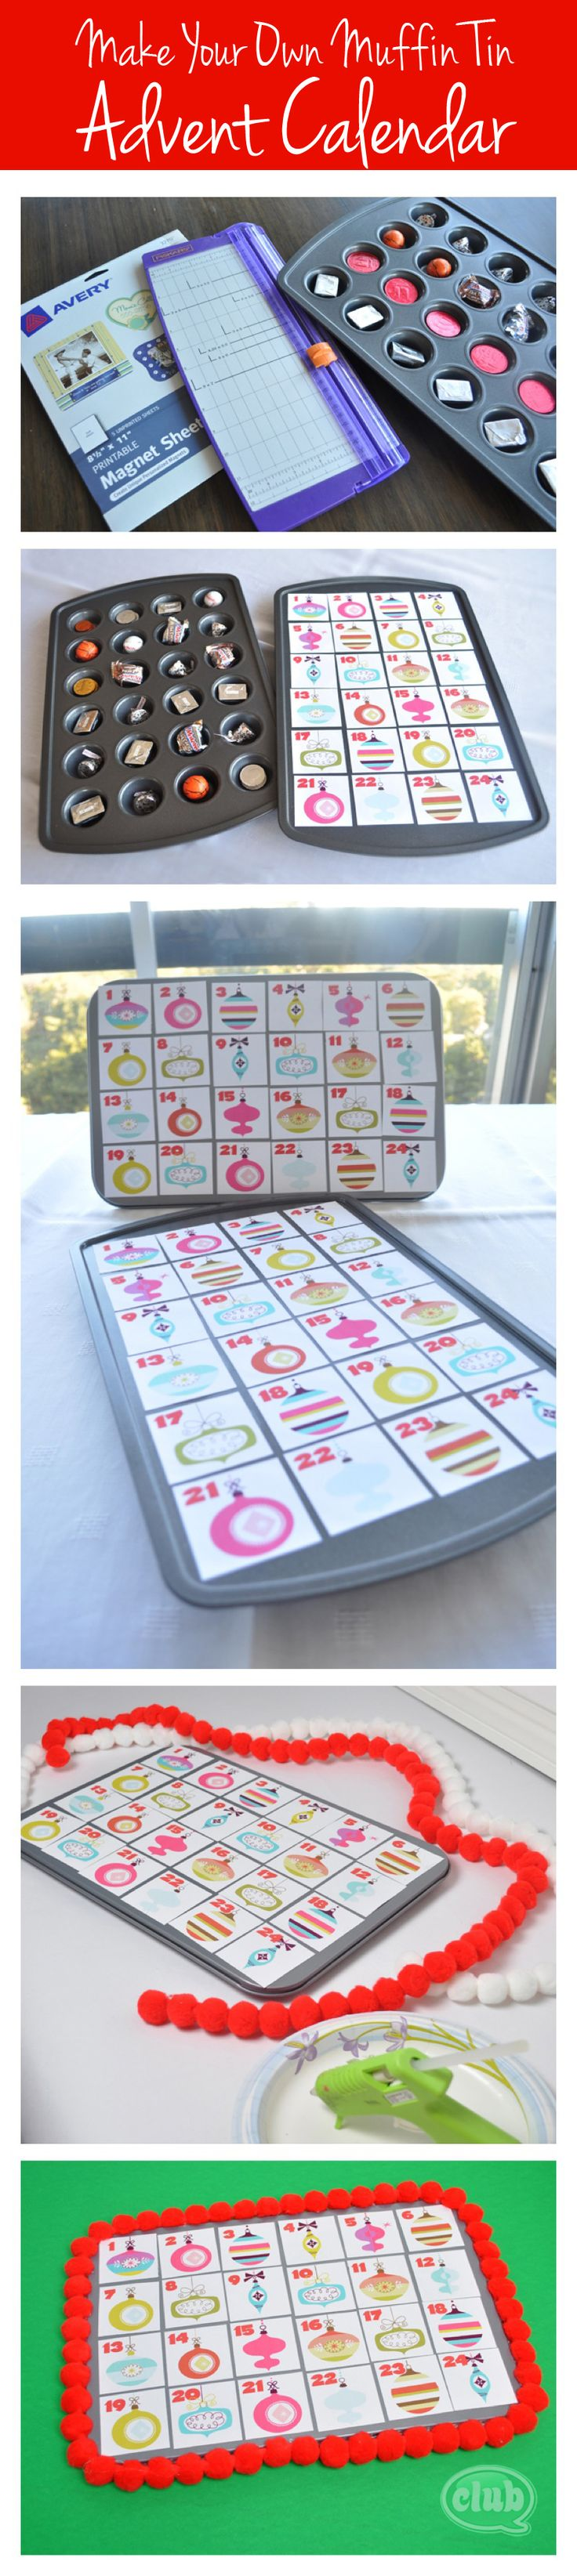 advent calendars to make now so you re ready for december advent